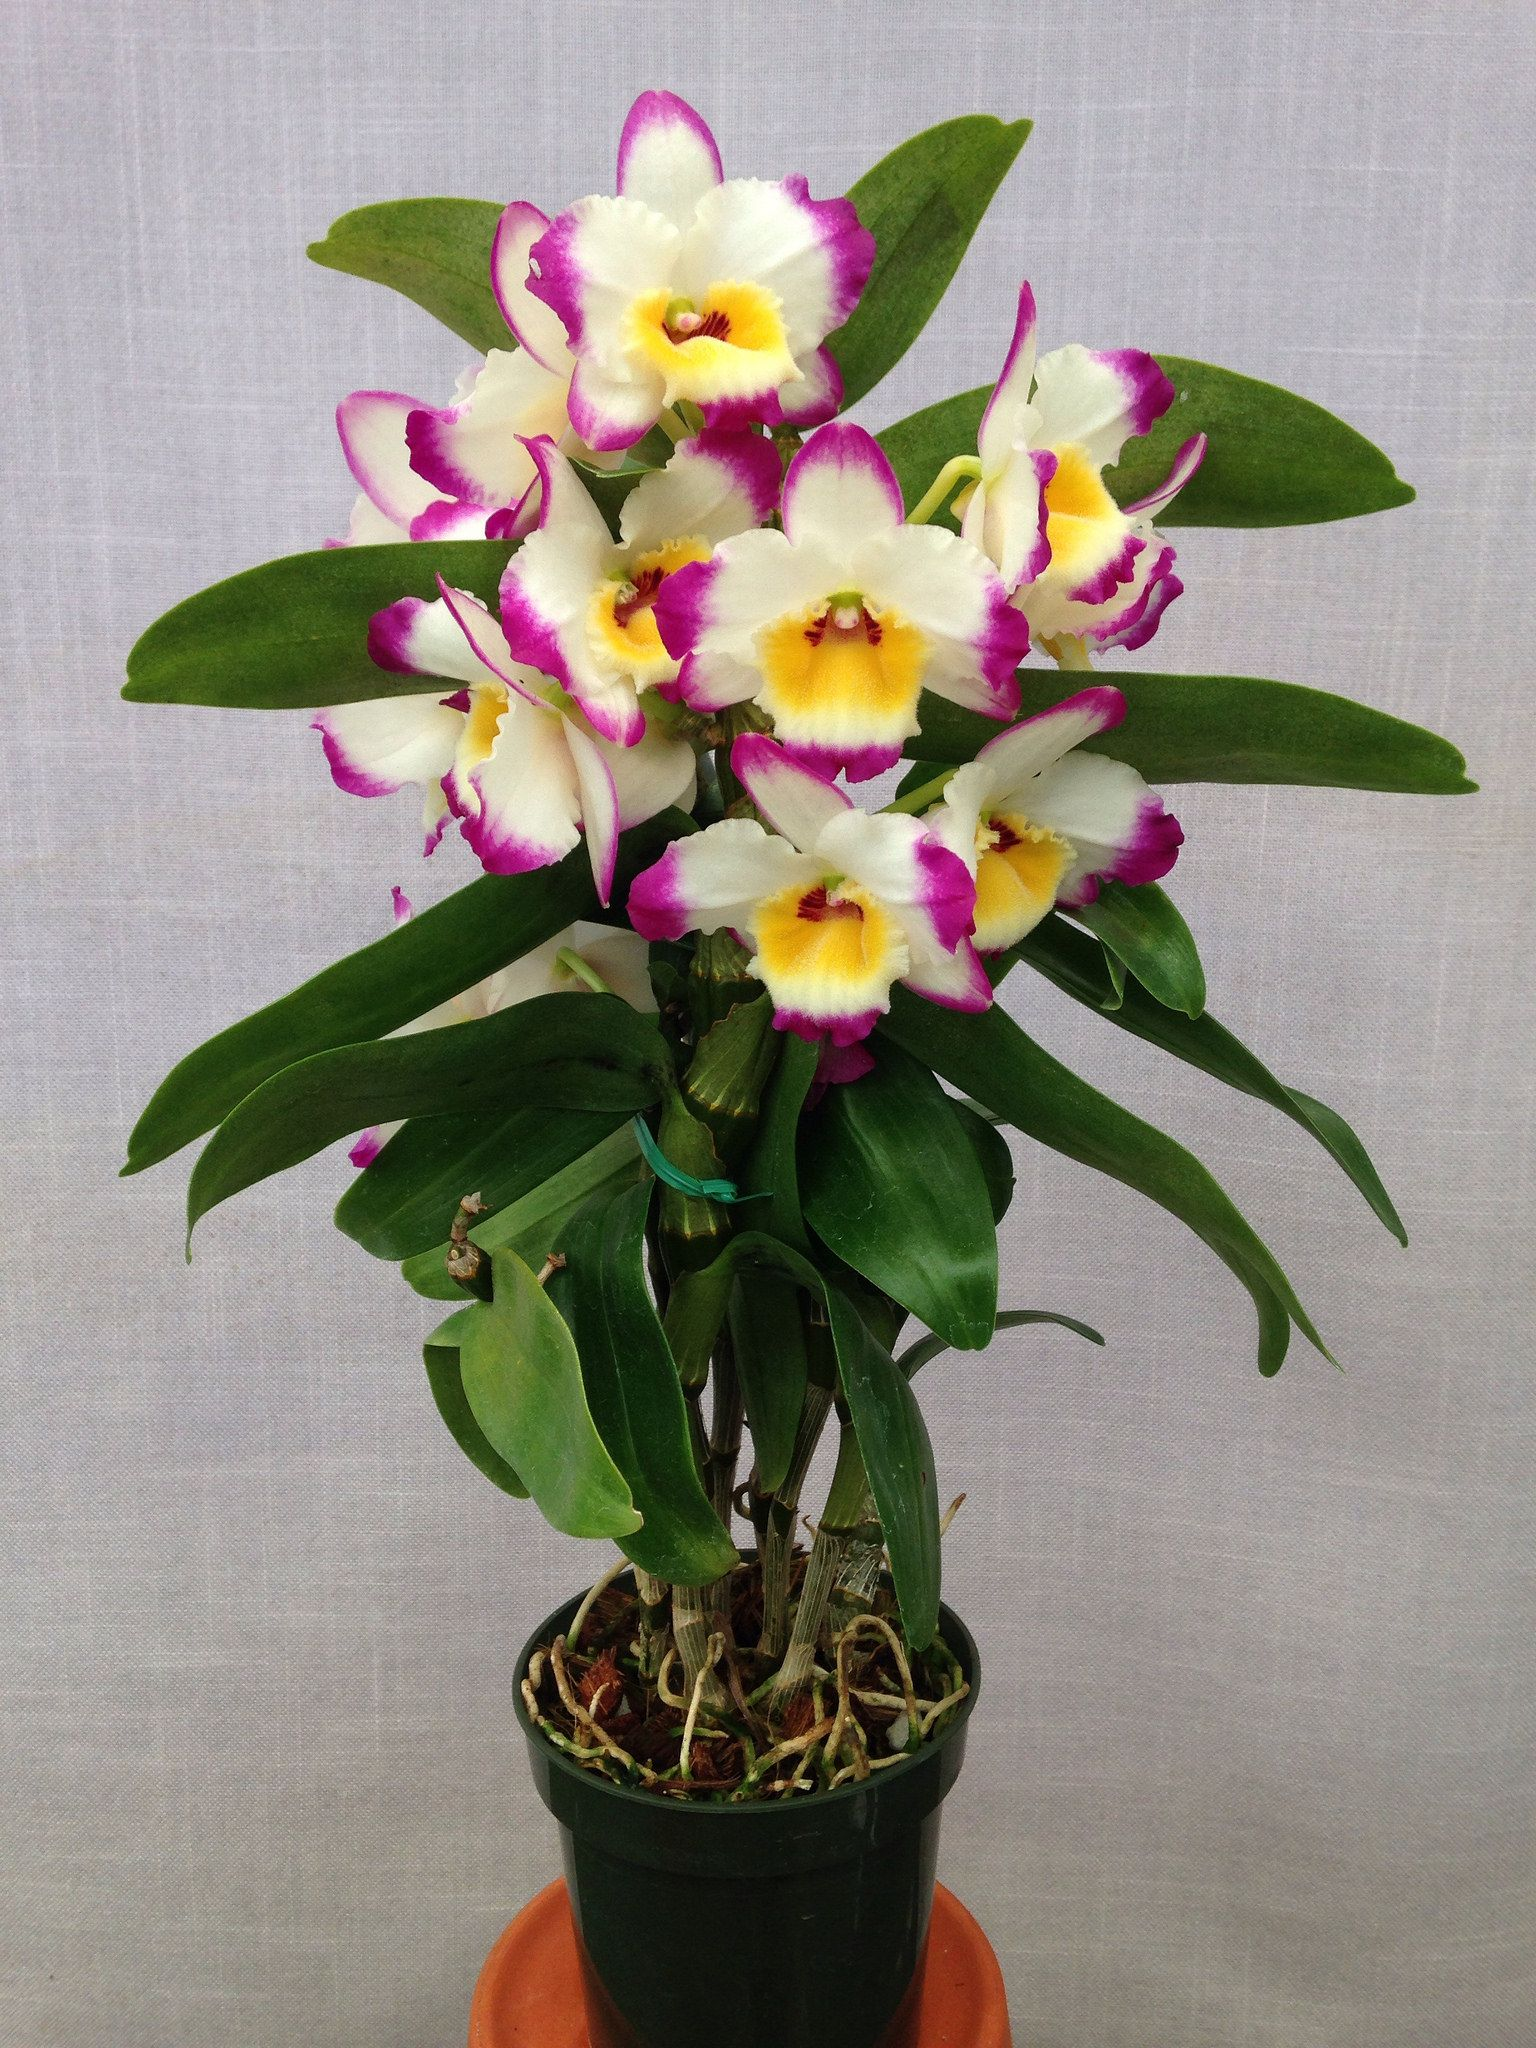 Dendrobium Lucky Angel 'Smash' (Holy Night X Eilen Beauty